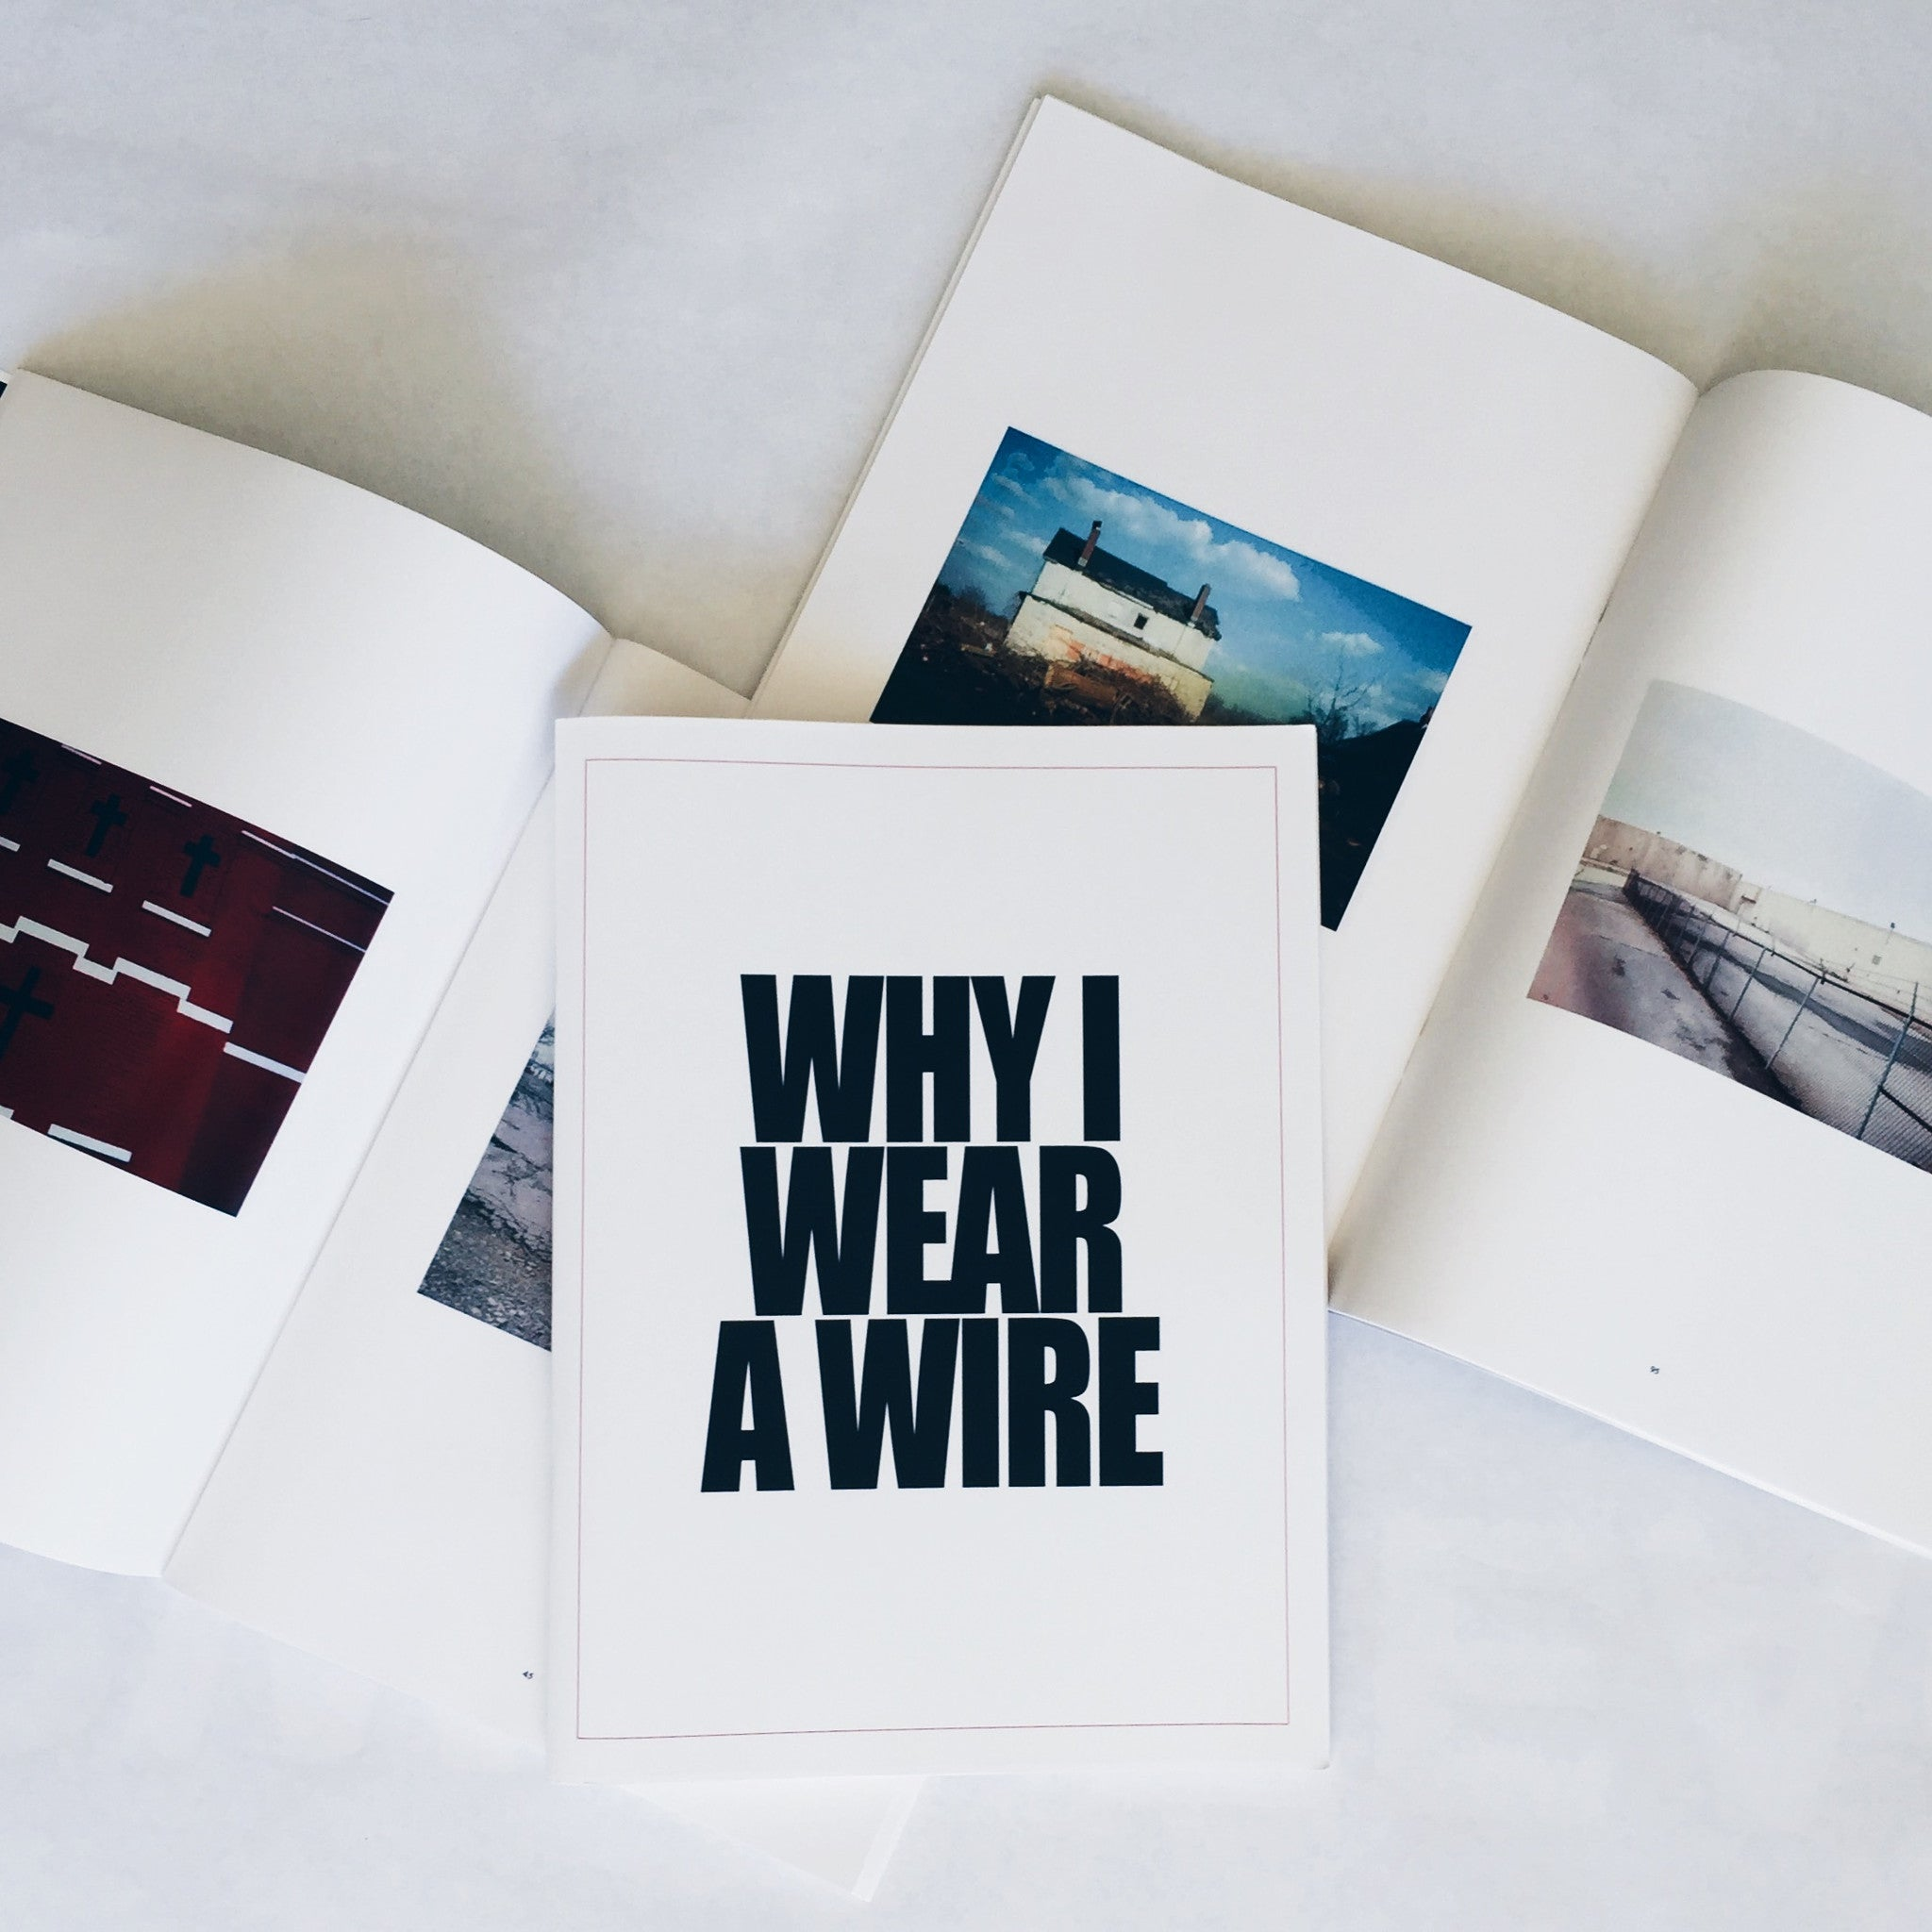 WHY I WEAR A WIRE